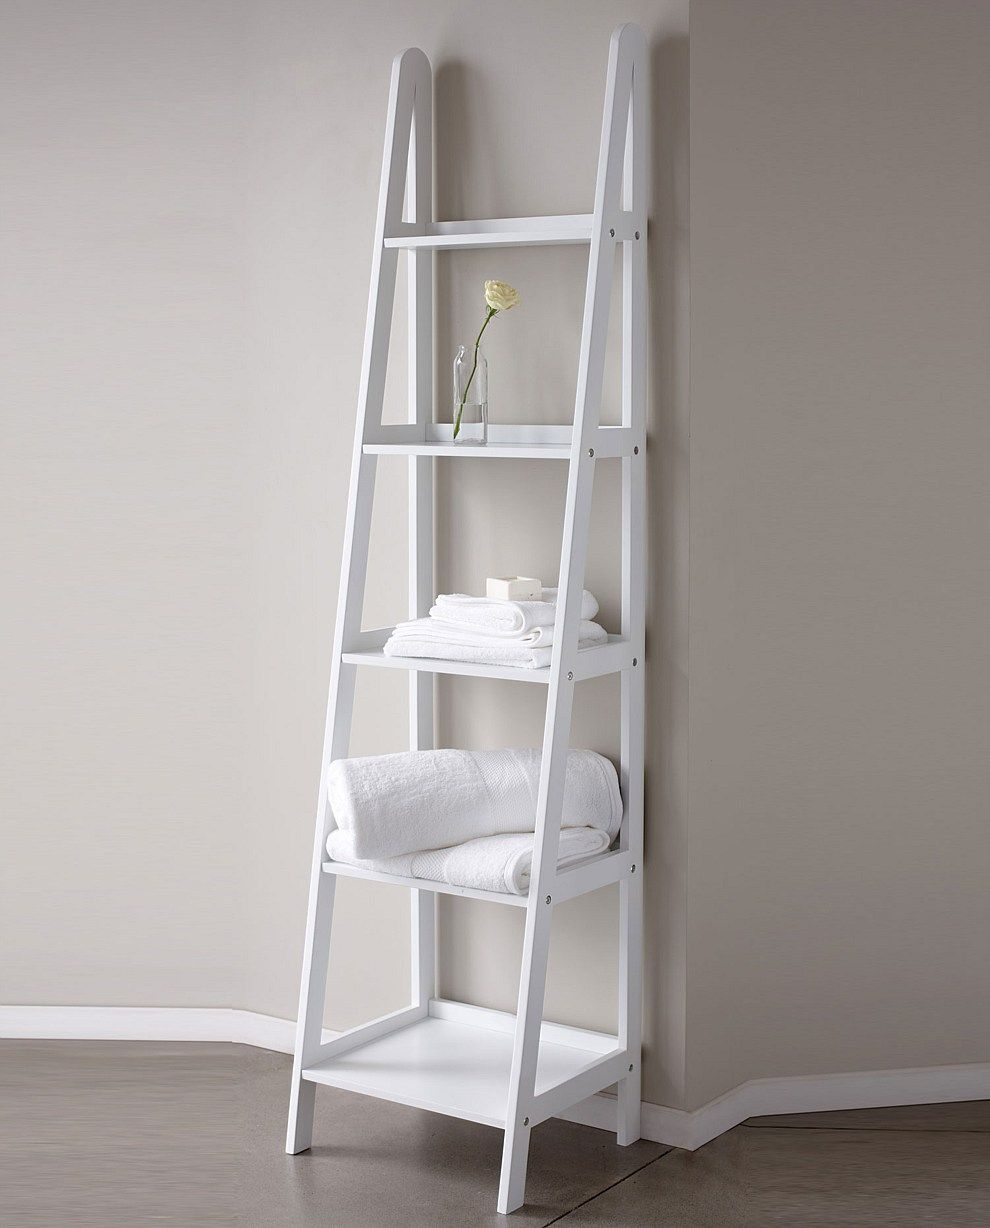 Ladder shelving for cook nook extra serving dishes cook books etc